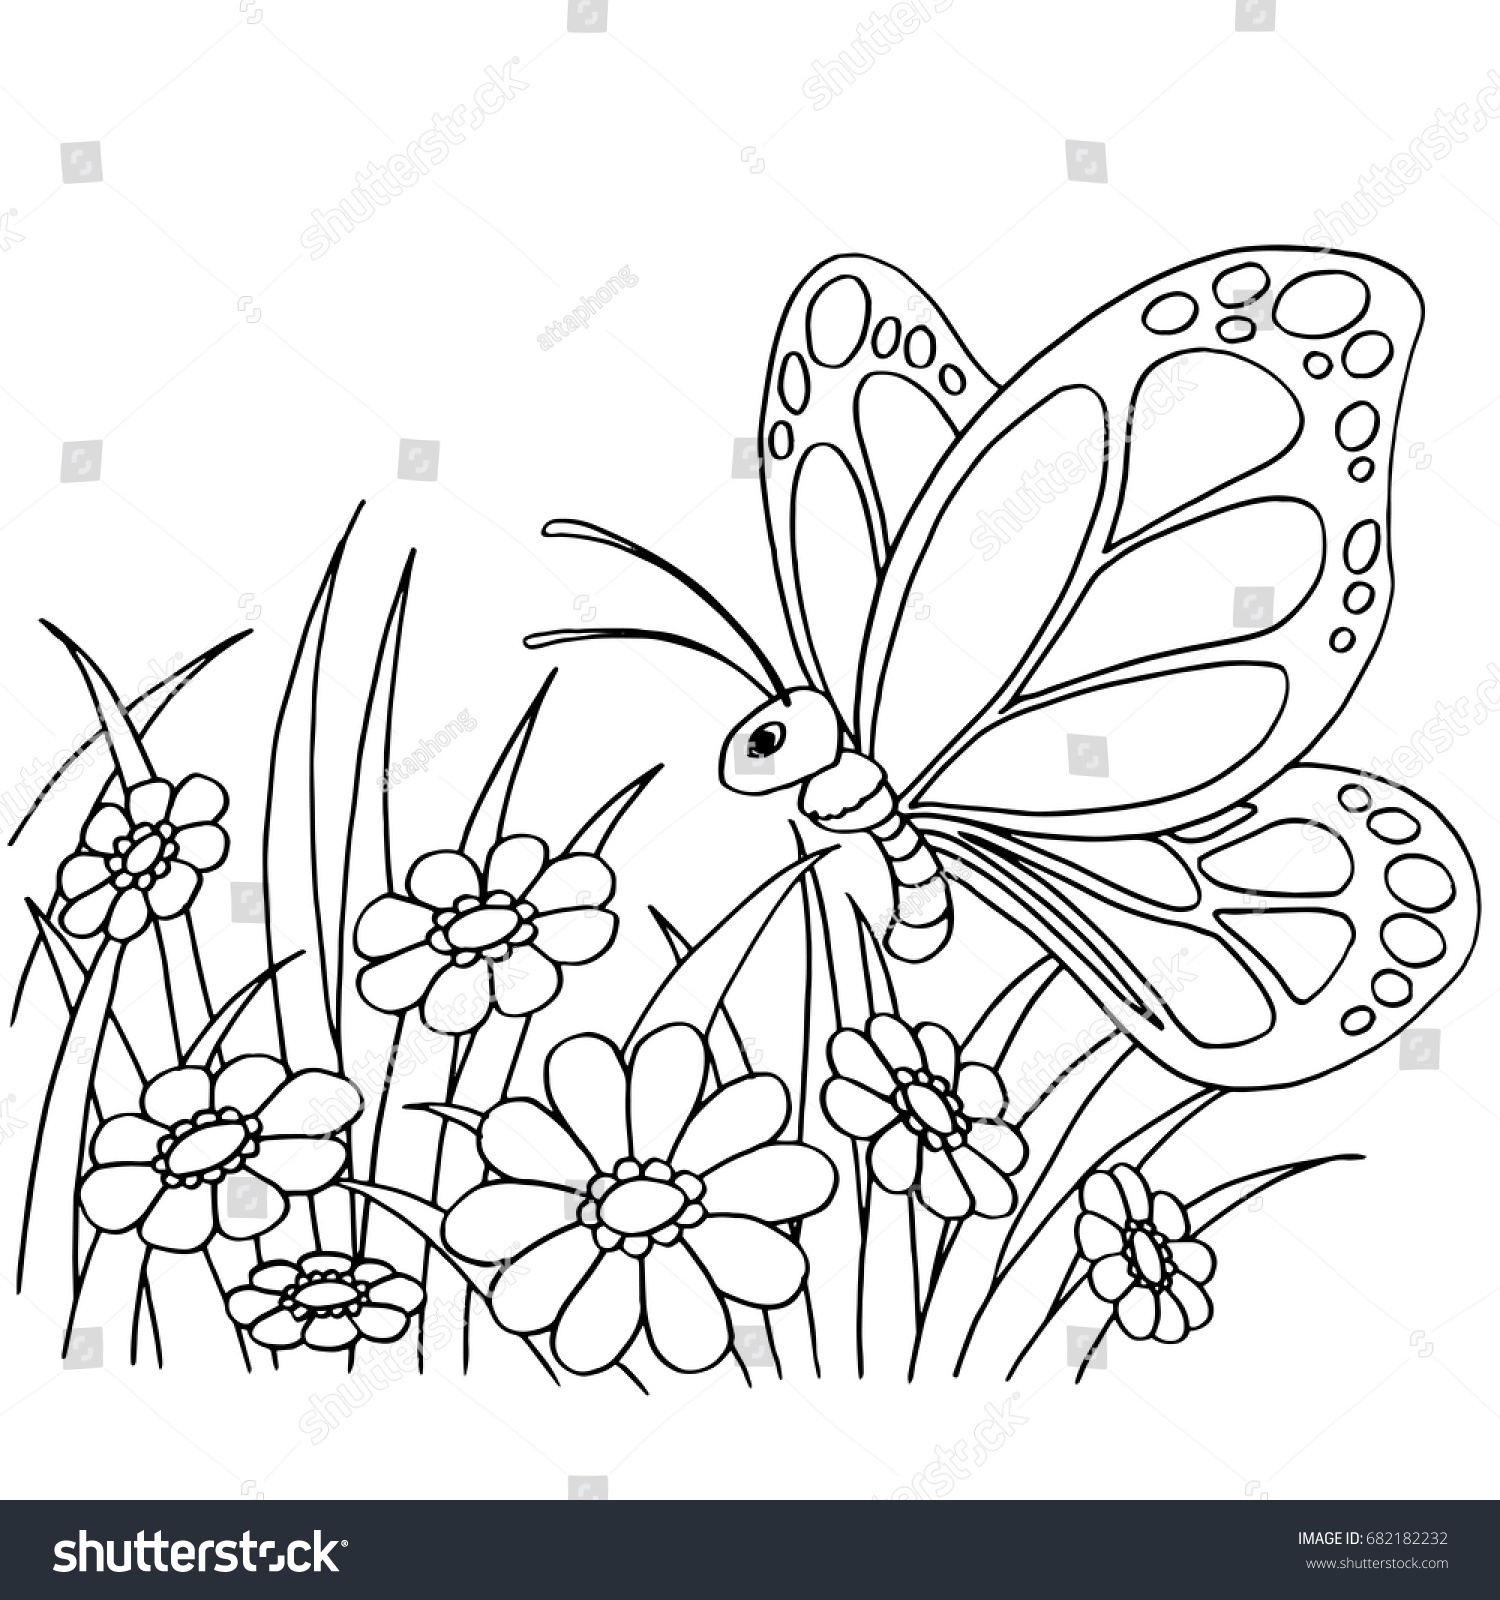 Butterfly Flower Cartoon Coloring Page Vector Stock Vector (Royalty ...